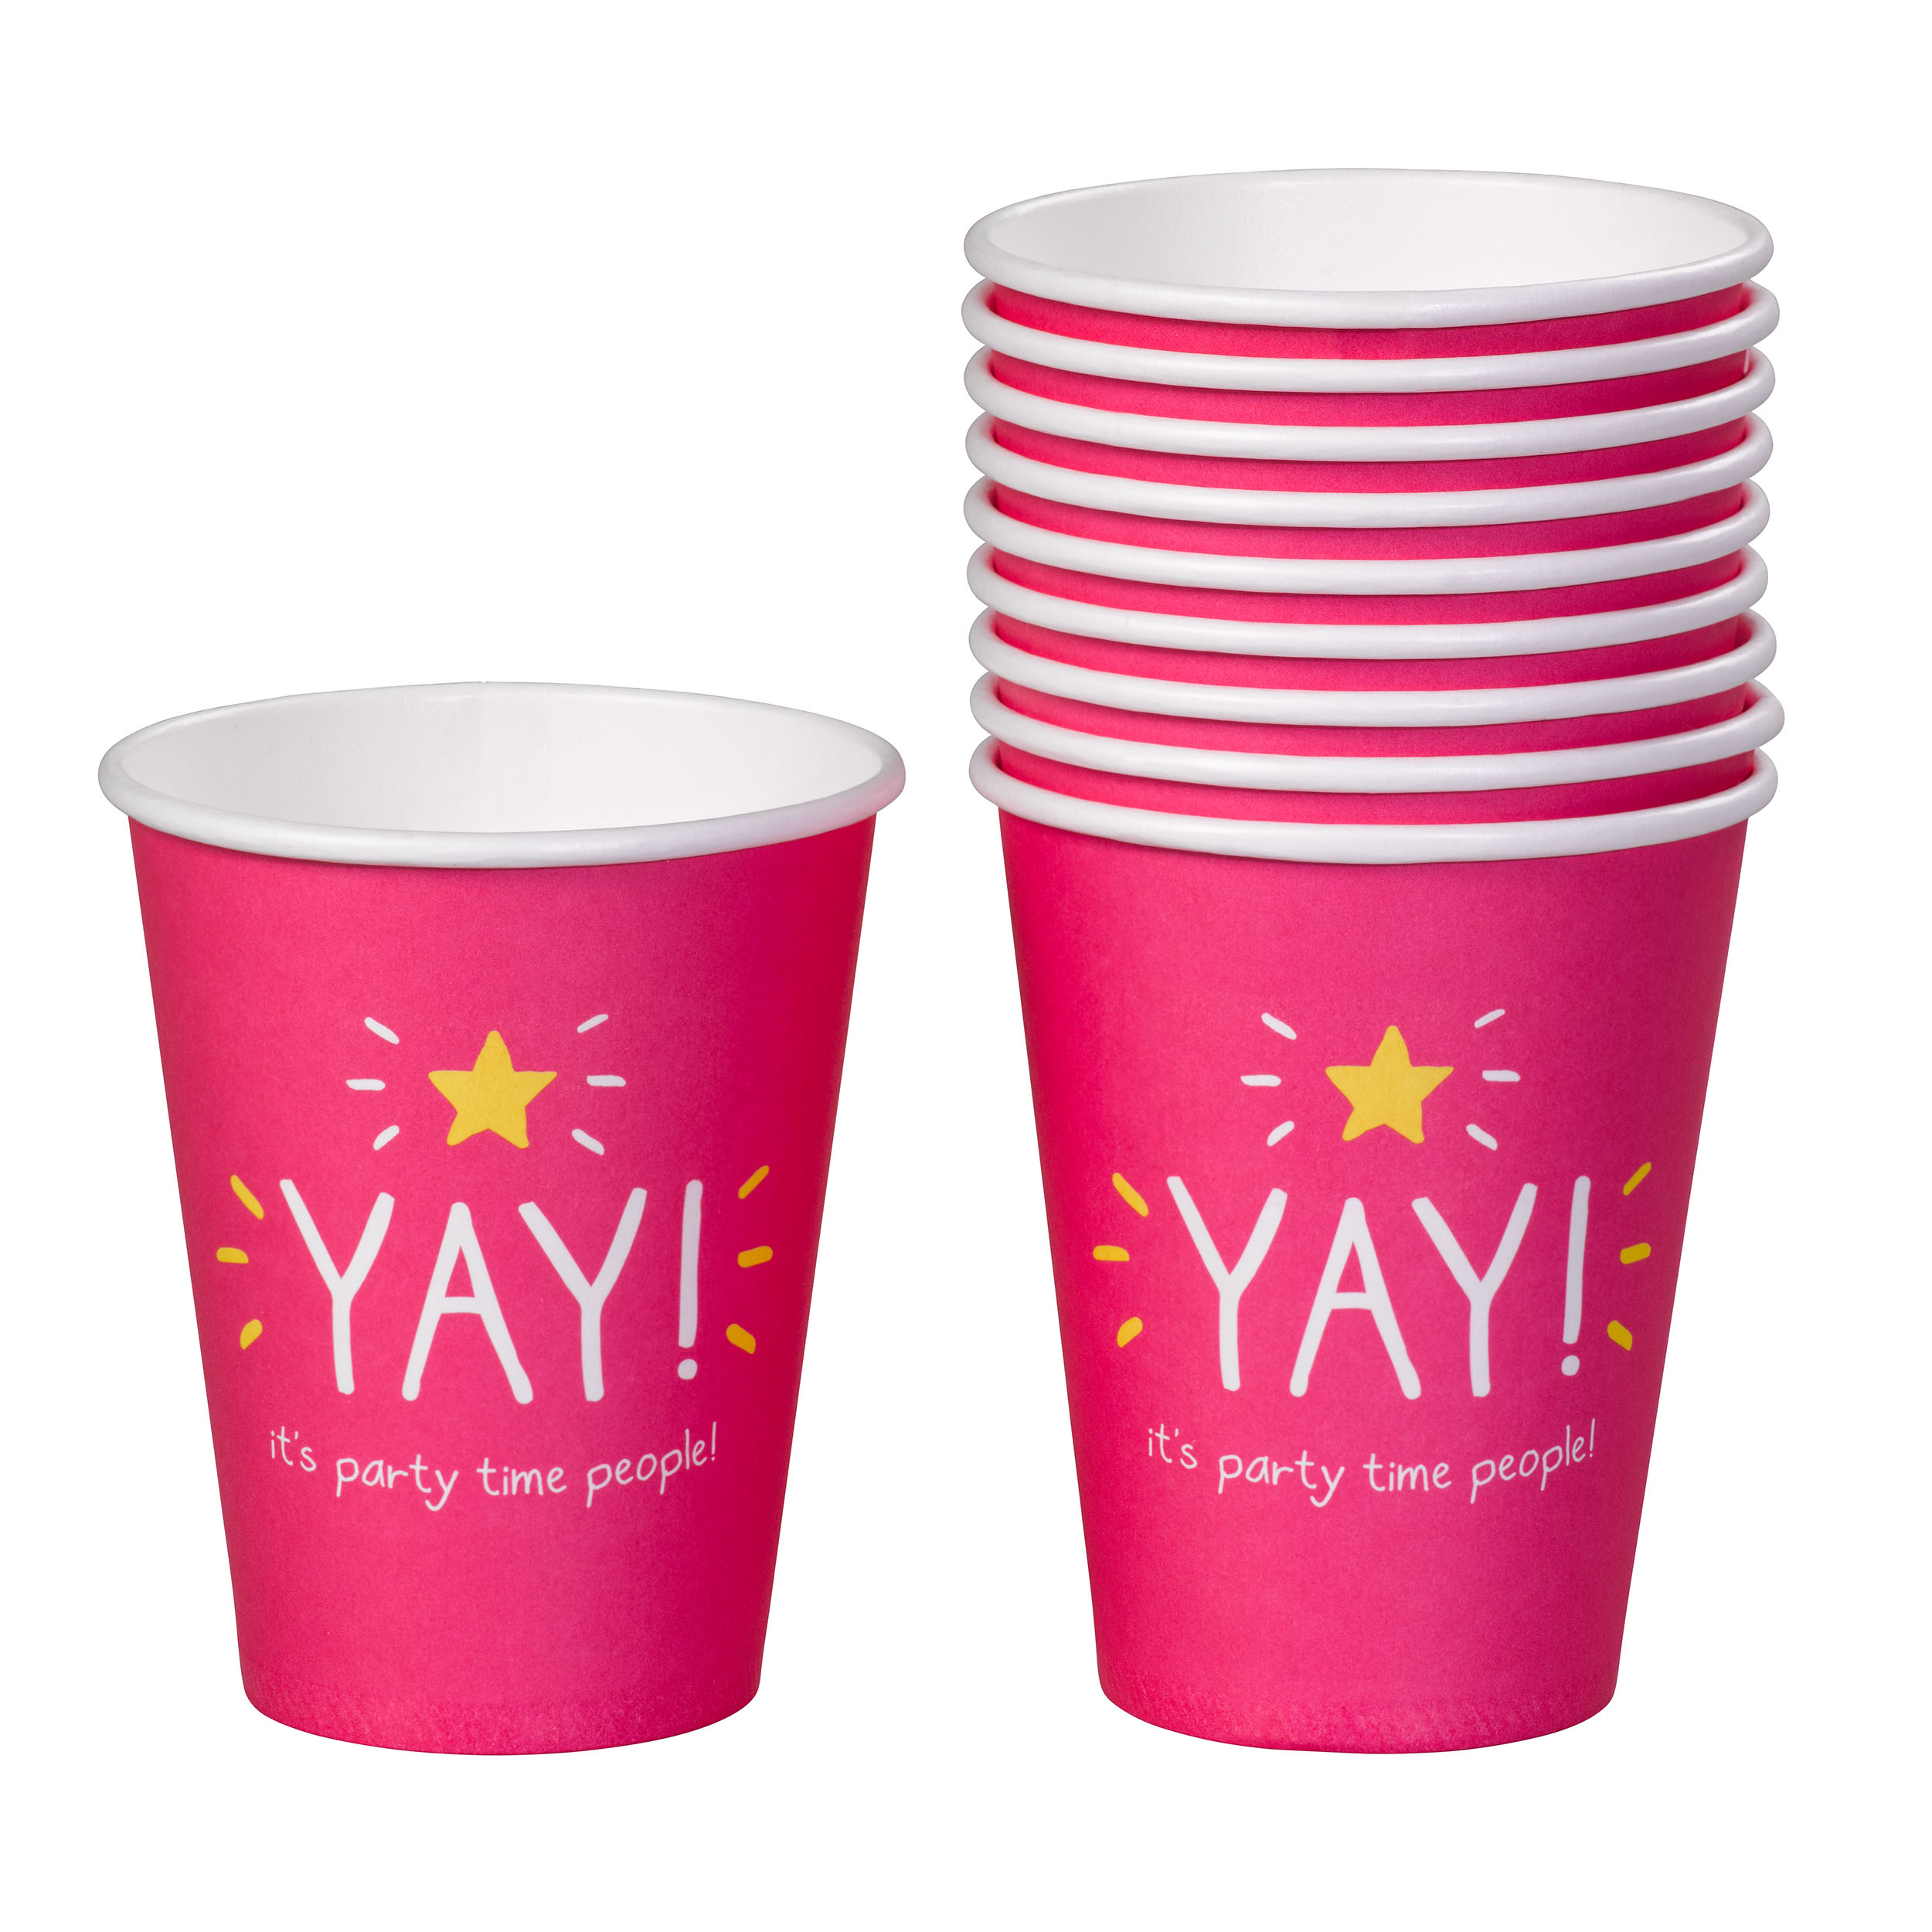 Yay' Party Cups